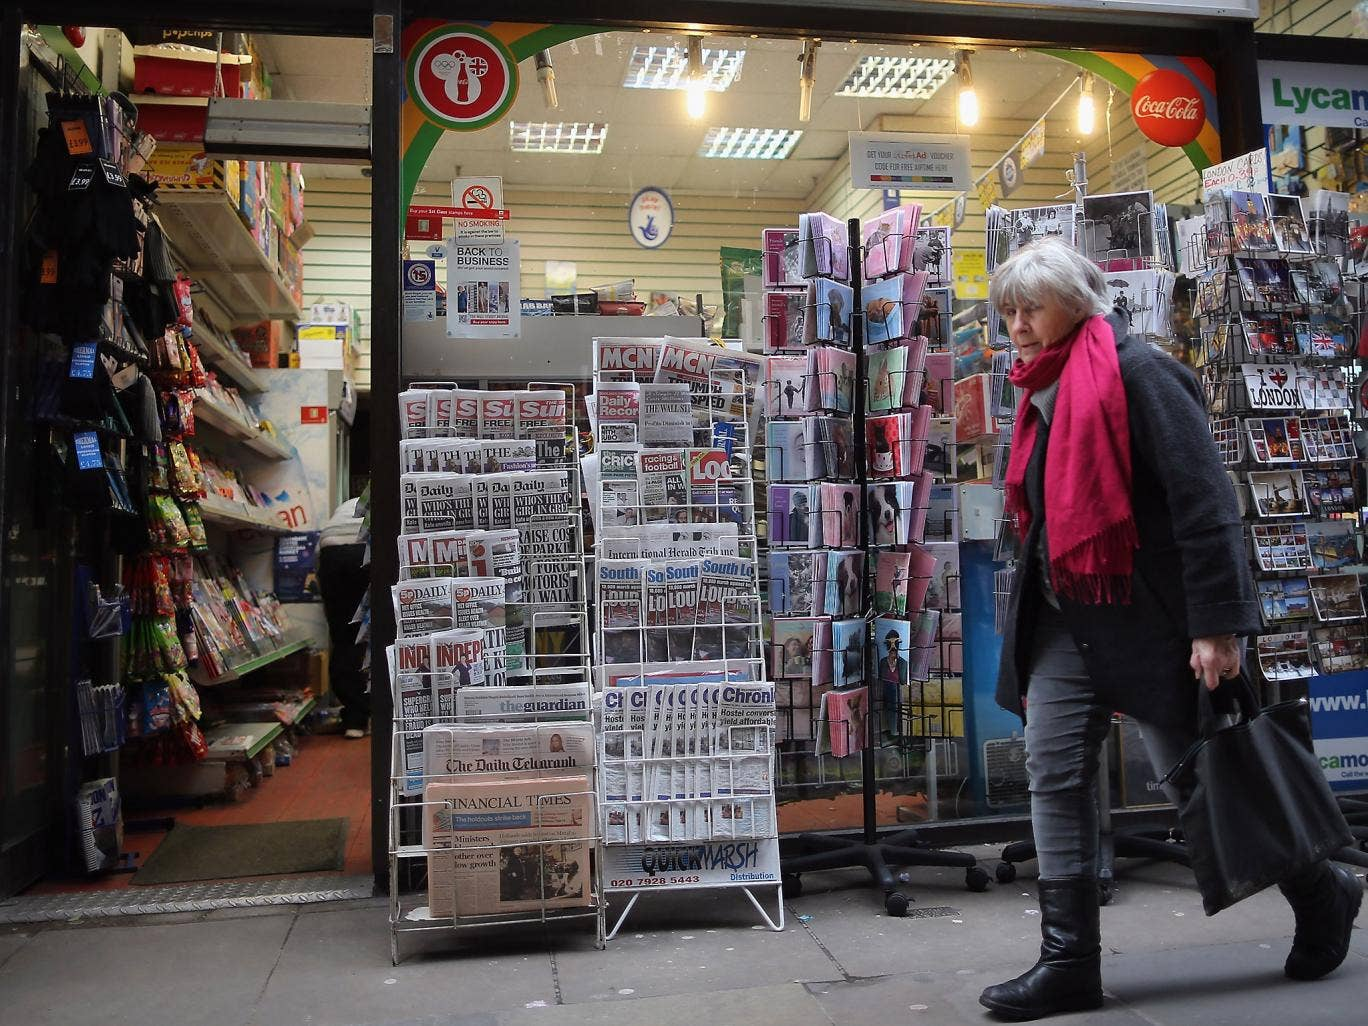 A London newsagents: tighter regulation planned for British press 'poses worldwide threat' says the World Association of Newspapers and News Publishers